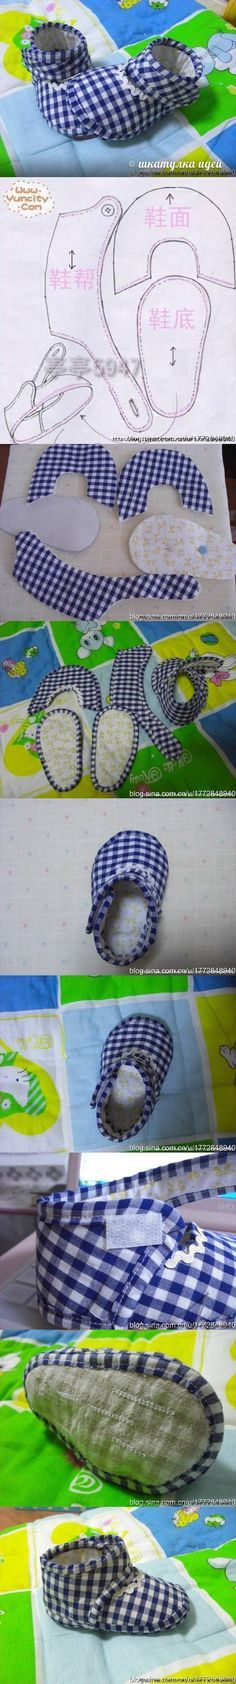 DIY Slippers for Babies DIY Projects | UsefulDIY.com